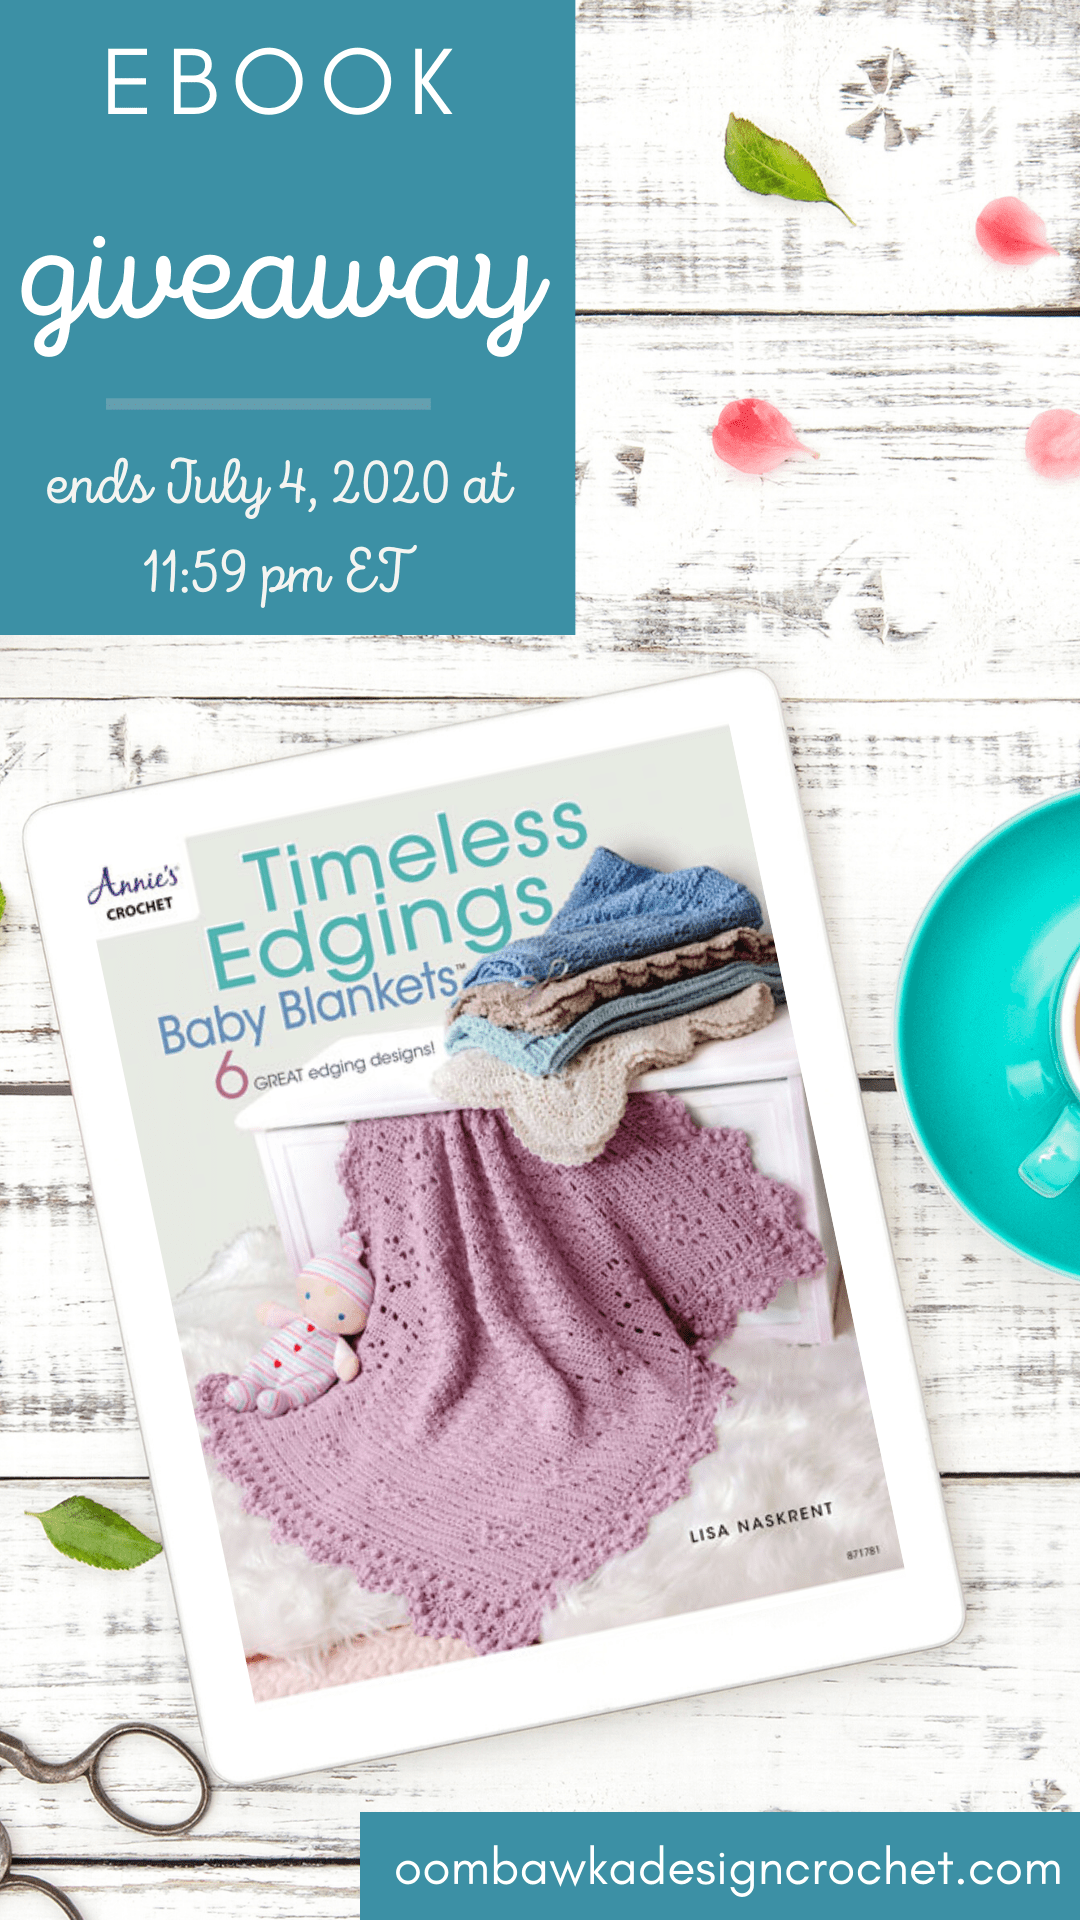 Timeless Edgings Baby Blankets Patterns